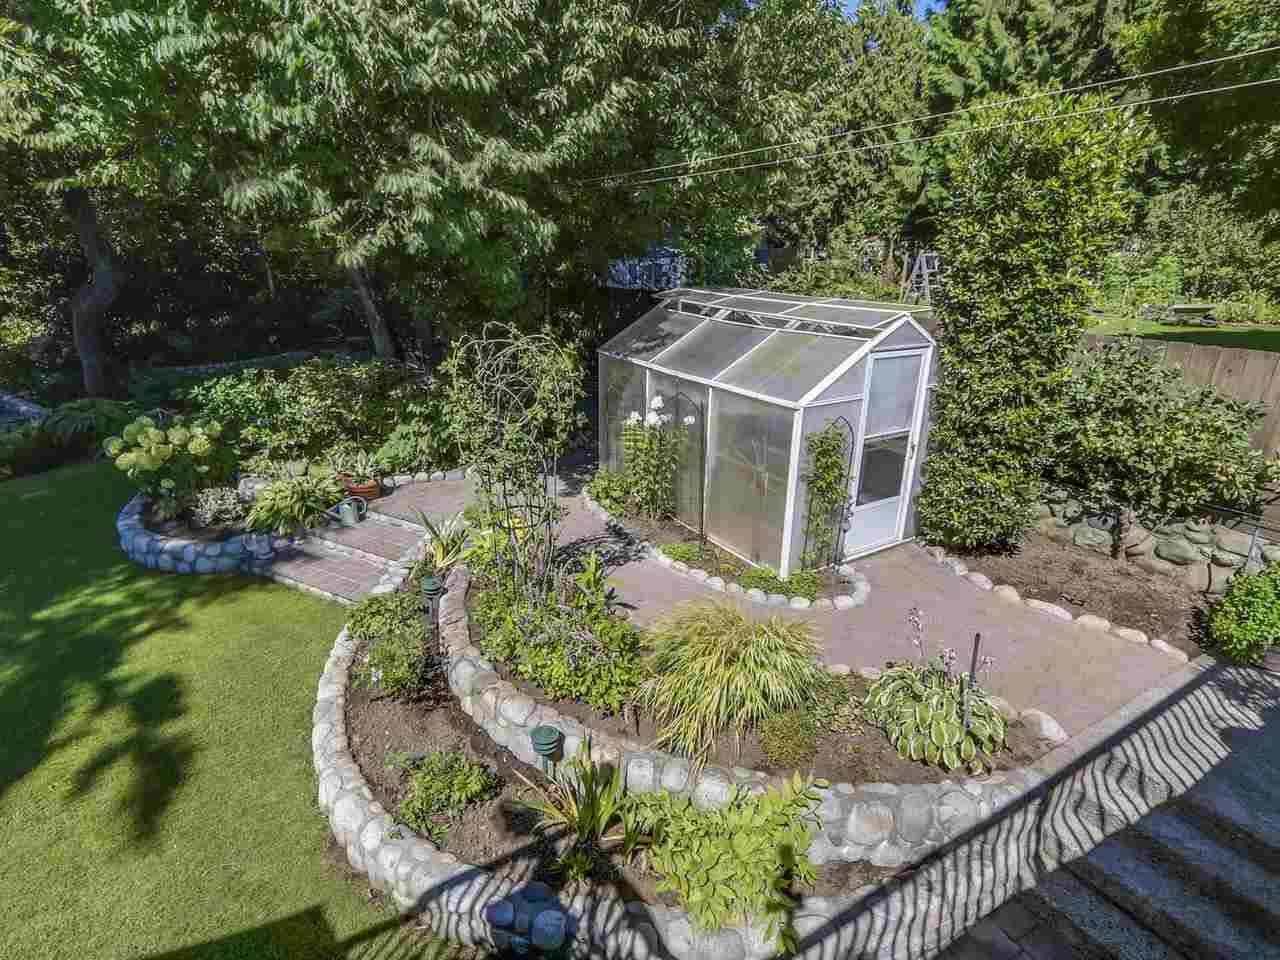 Photo 19: Photos: 587 HARRISON Avenue in Coquitlam: Coquitlam West House for sale : MLS®# R2097877